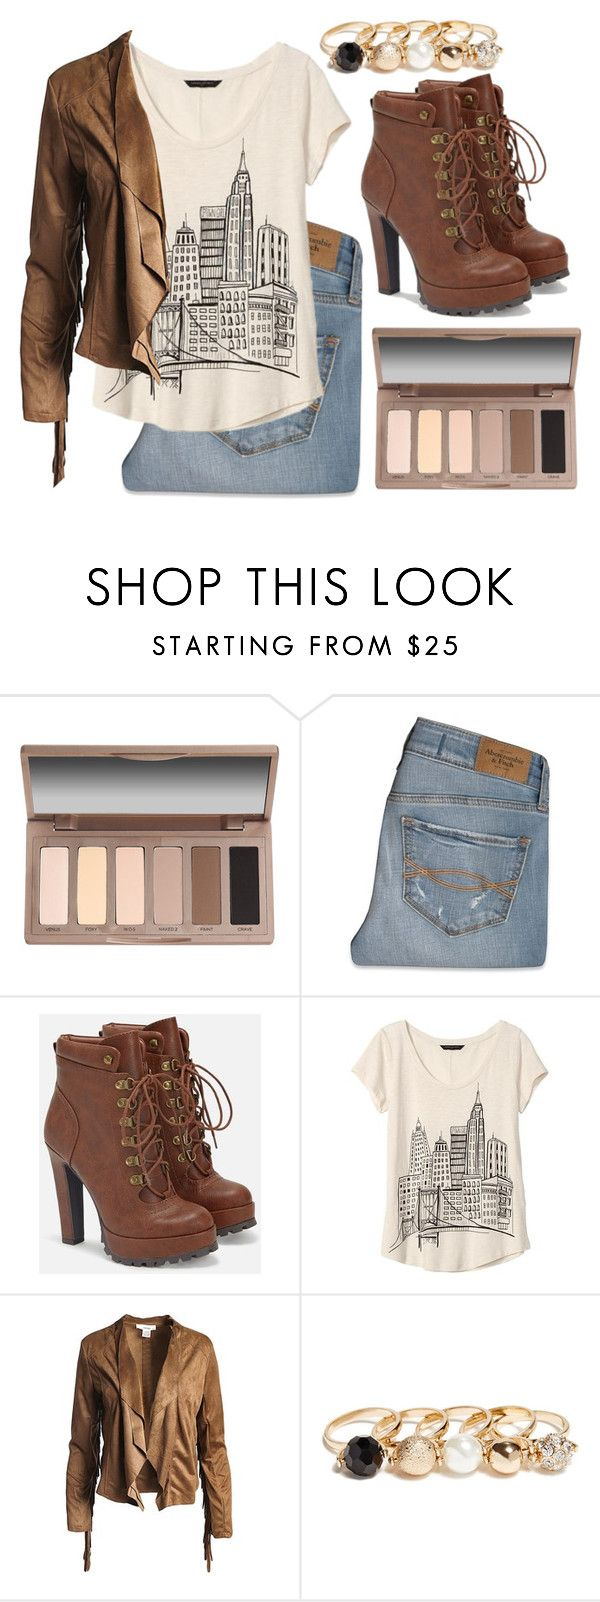 """""""Fall outfit"""" by shelbyvengeance ❤ liked on Polyvore featuring Urban Decay, Abercrombie & Fitch, JustFab, Banana Republic, Sans Souci and GUESS"""